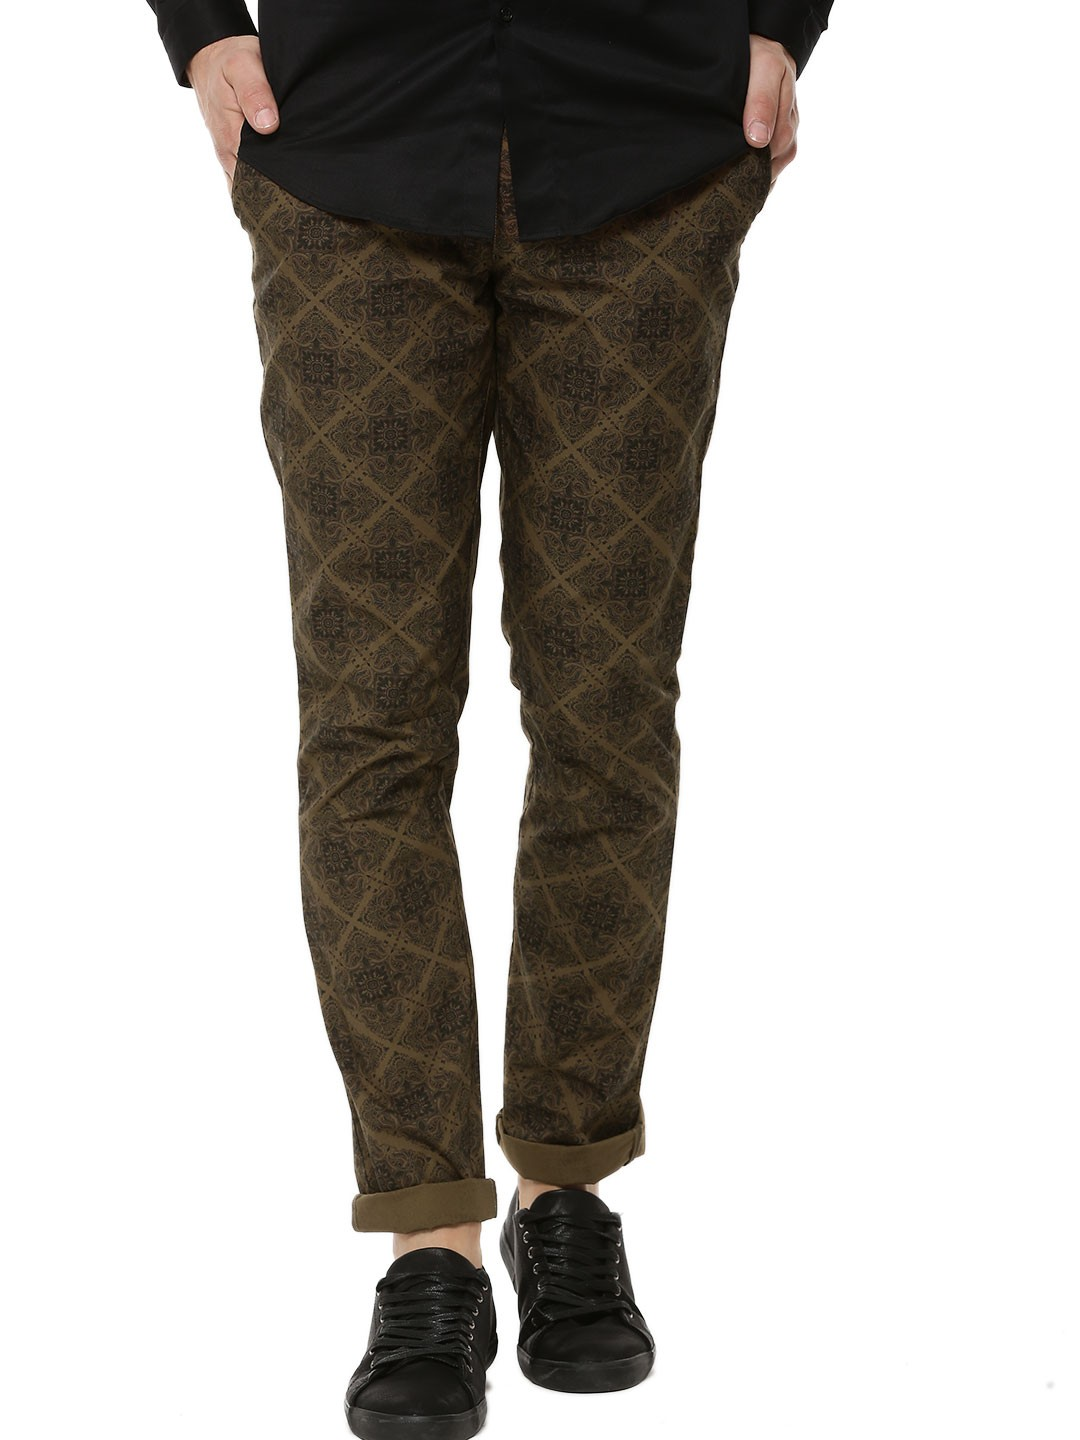 up-to-datestyling offer running shoes Buy KOOVS Khaki Printed Chinos for Men Online in India